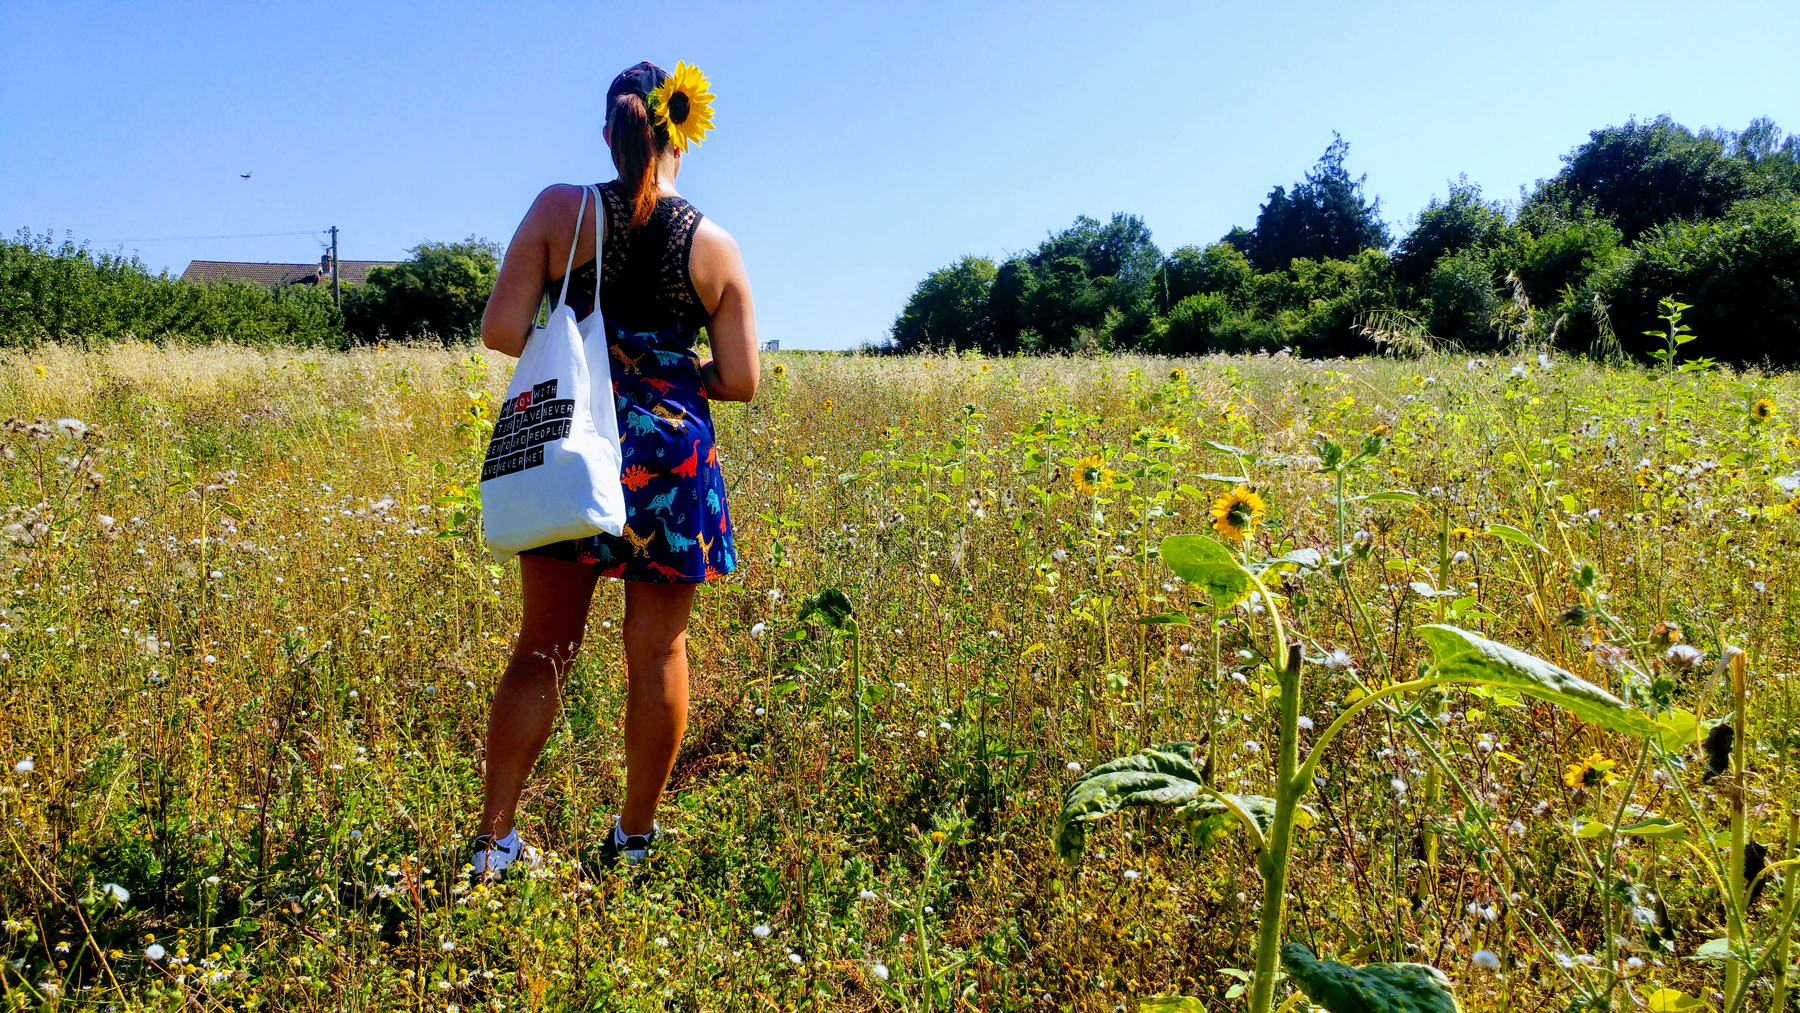 I am standing in a filed with a few sunflowers. My back is turned to the camera and I have a big sunflower in my hair.